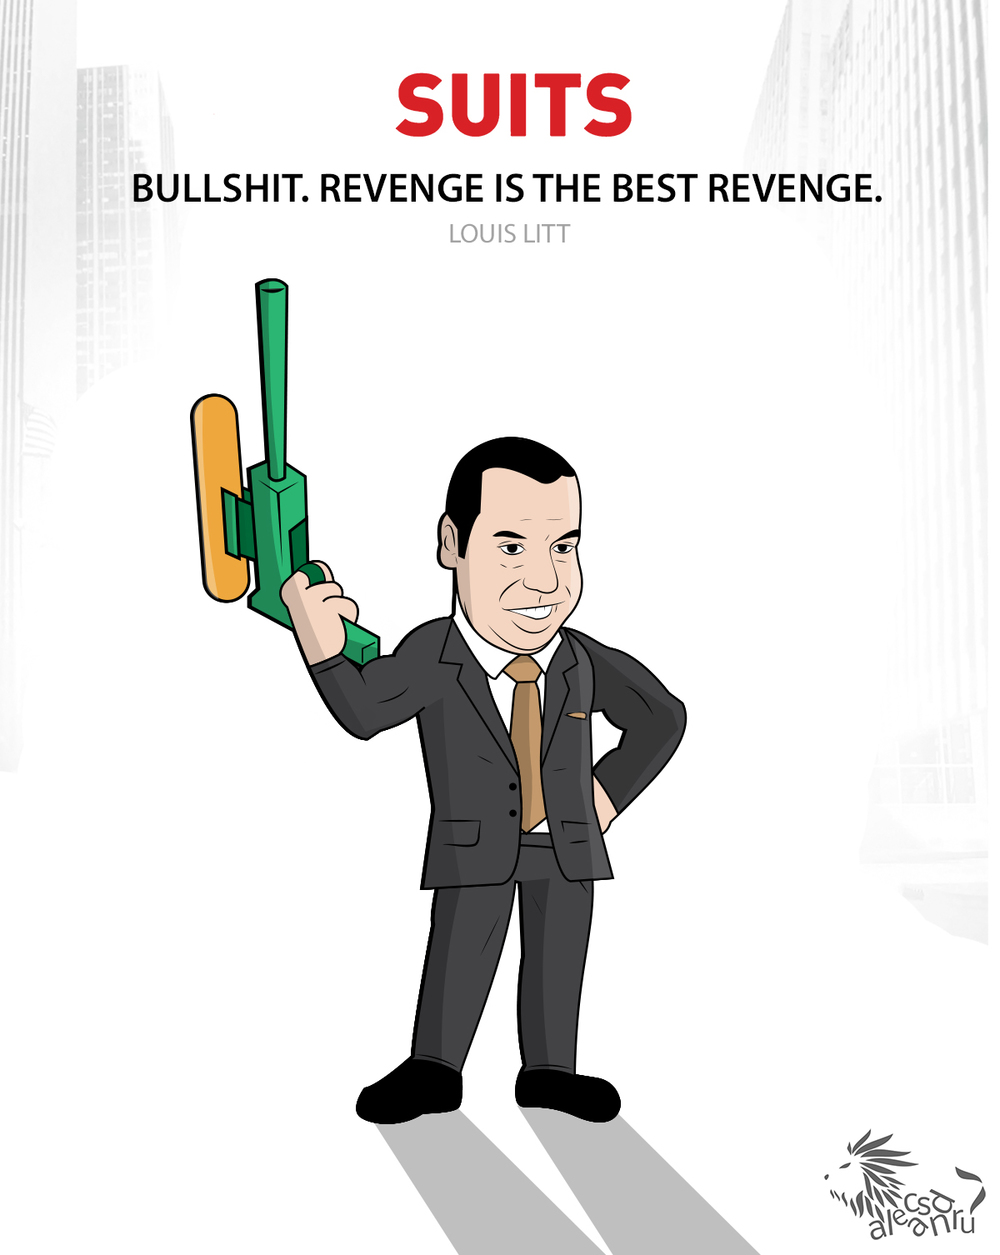 Revenge is the best revenge.